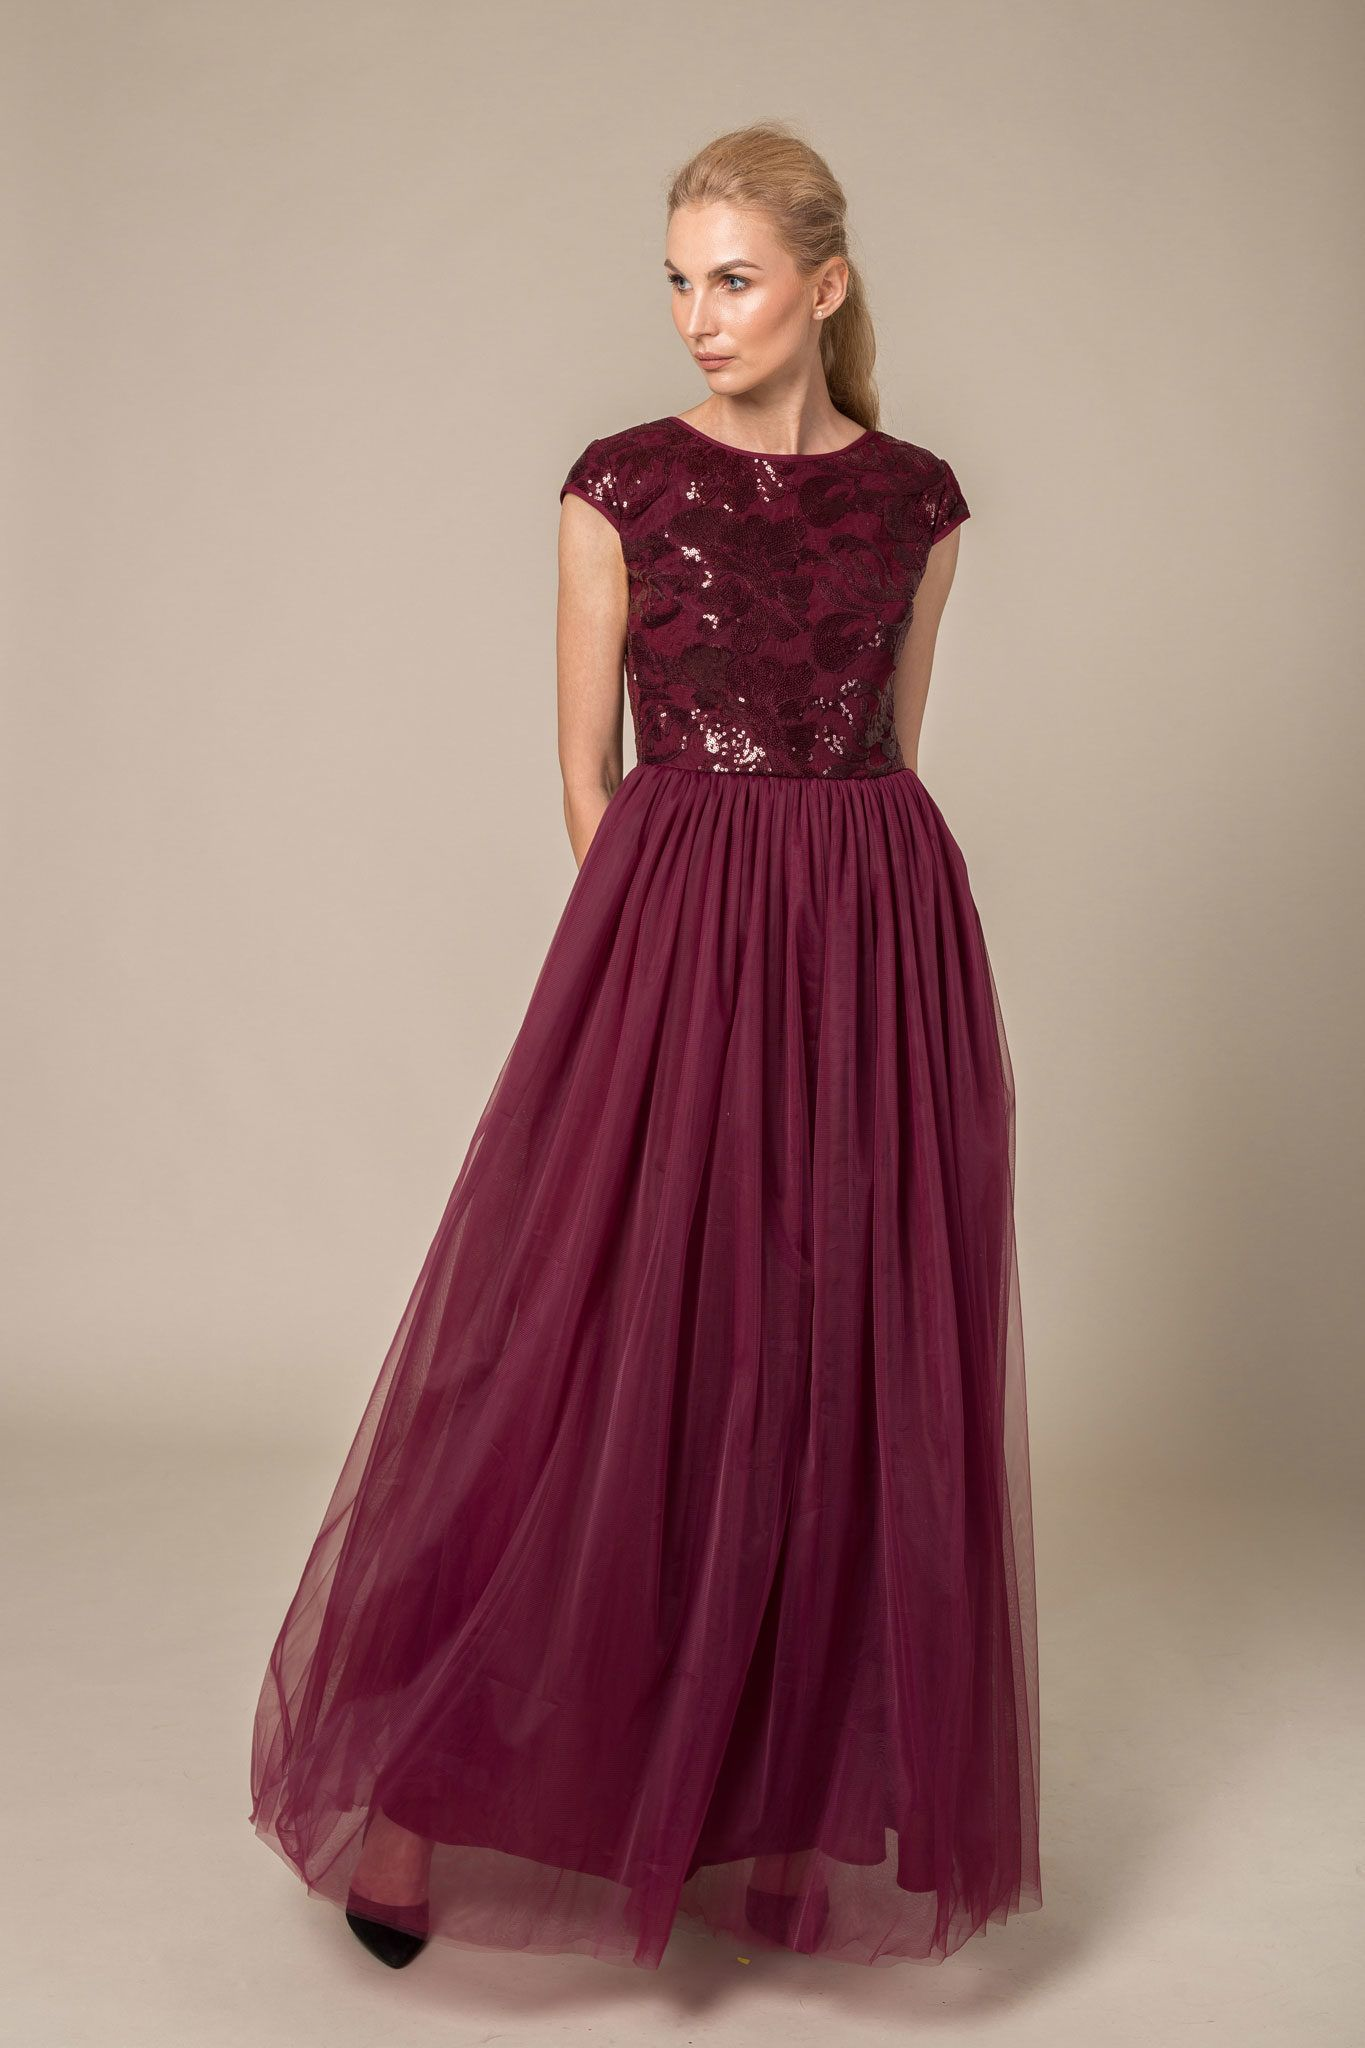 Long burgundy mother of the bride dress